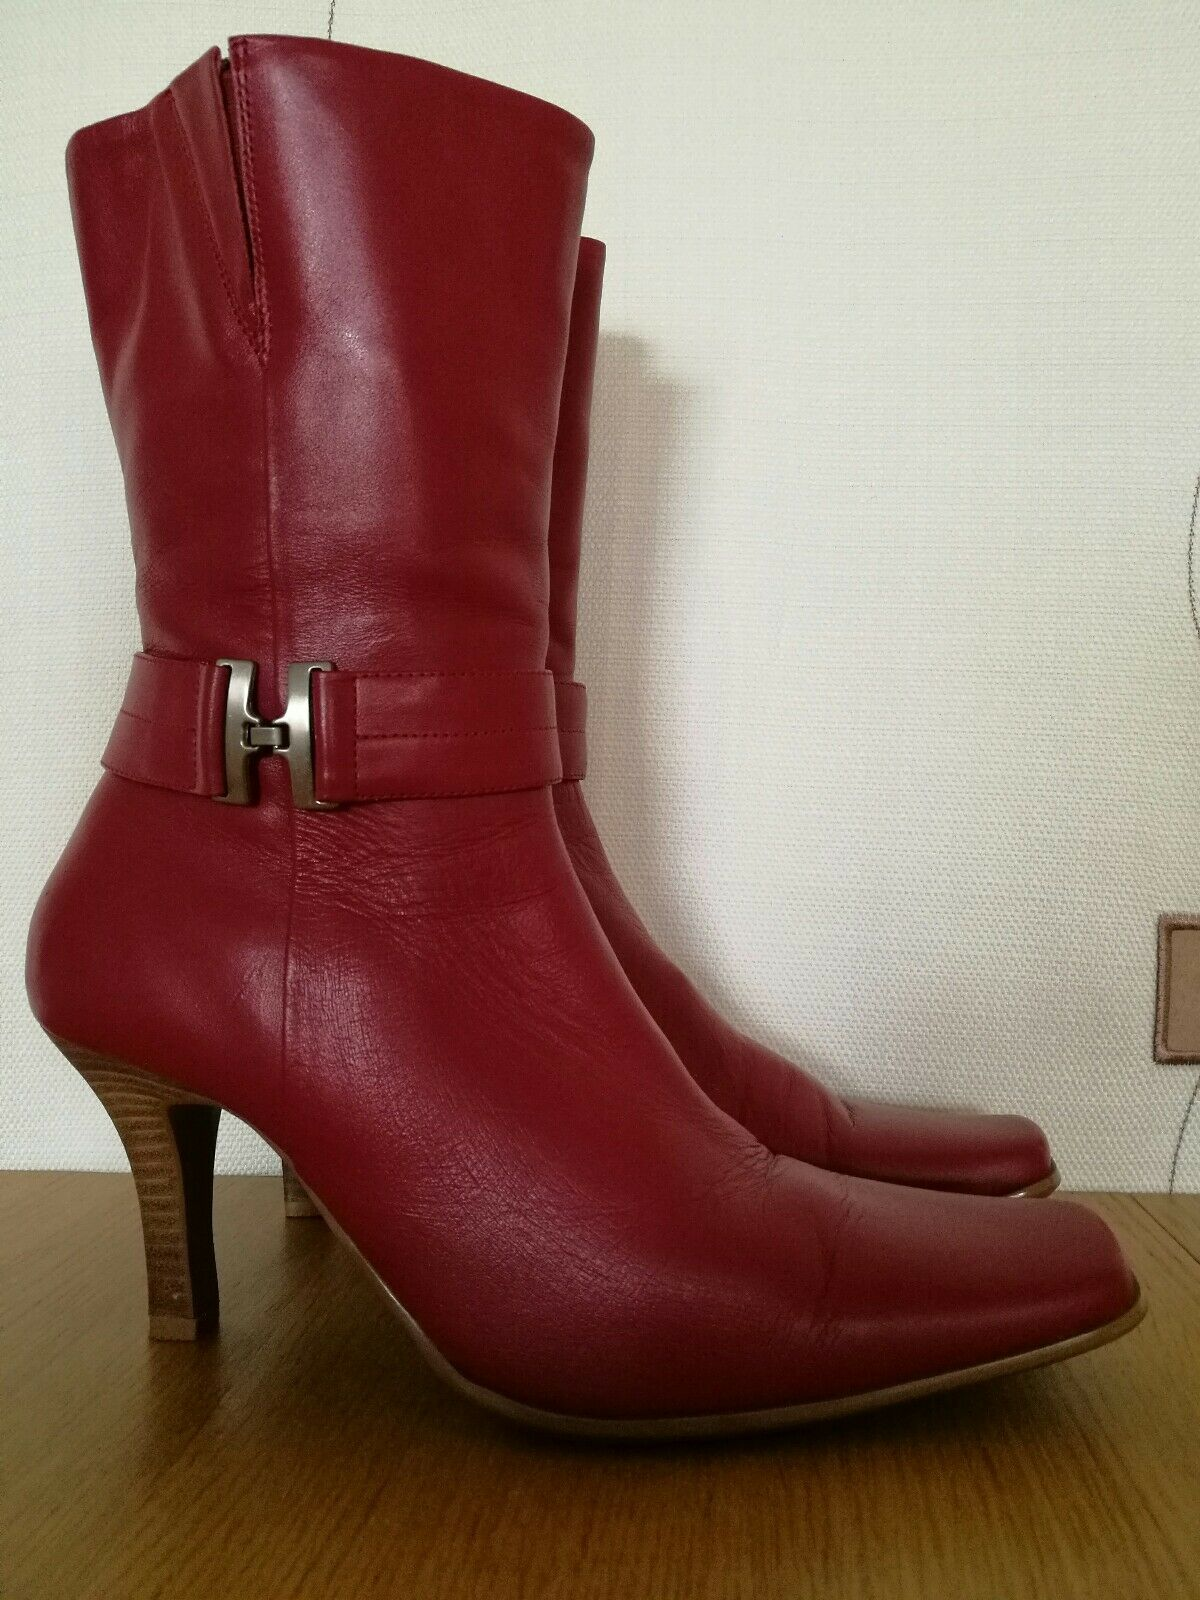 BOOTS 6.5 HEELS UK 40 EUR RED LEATHER HEELS 6.5 BRUNO VALENTI DESIGNER 03c293